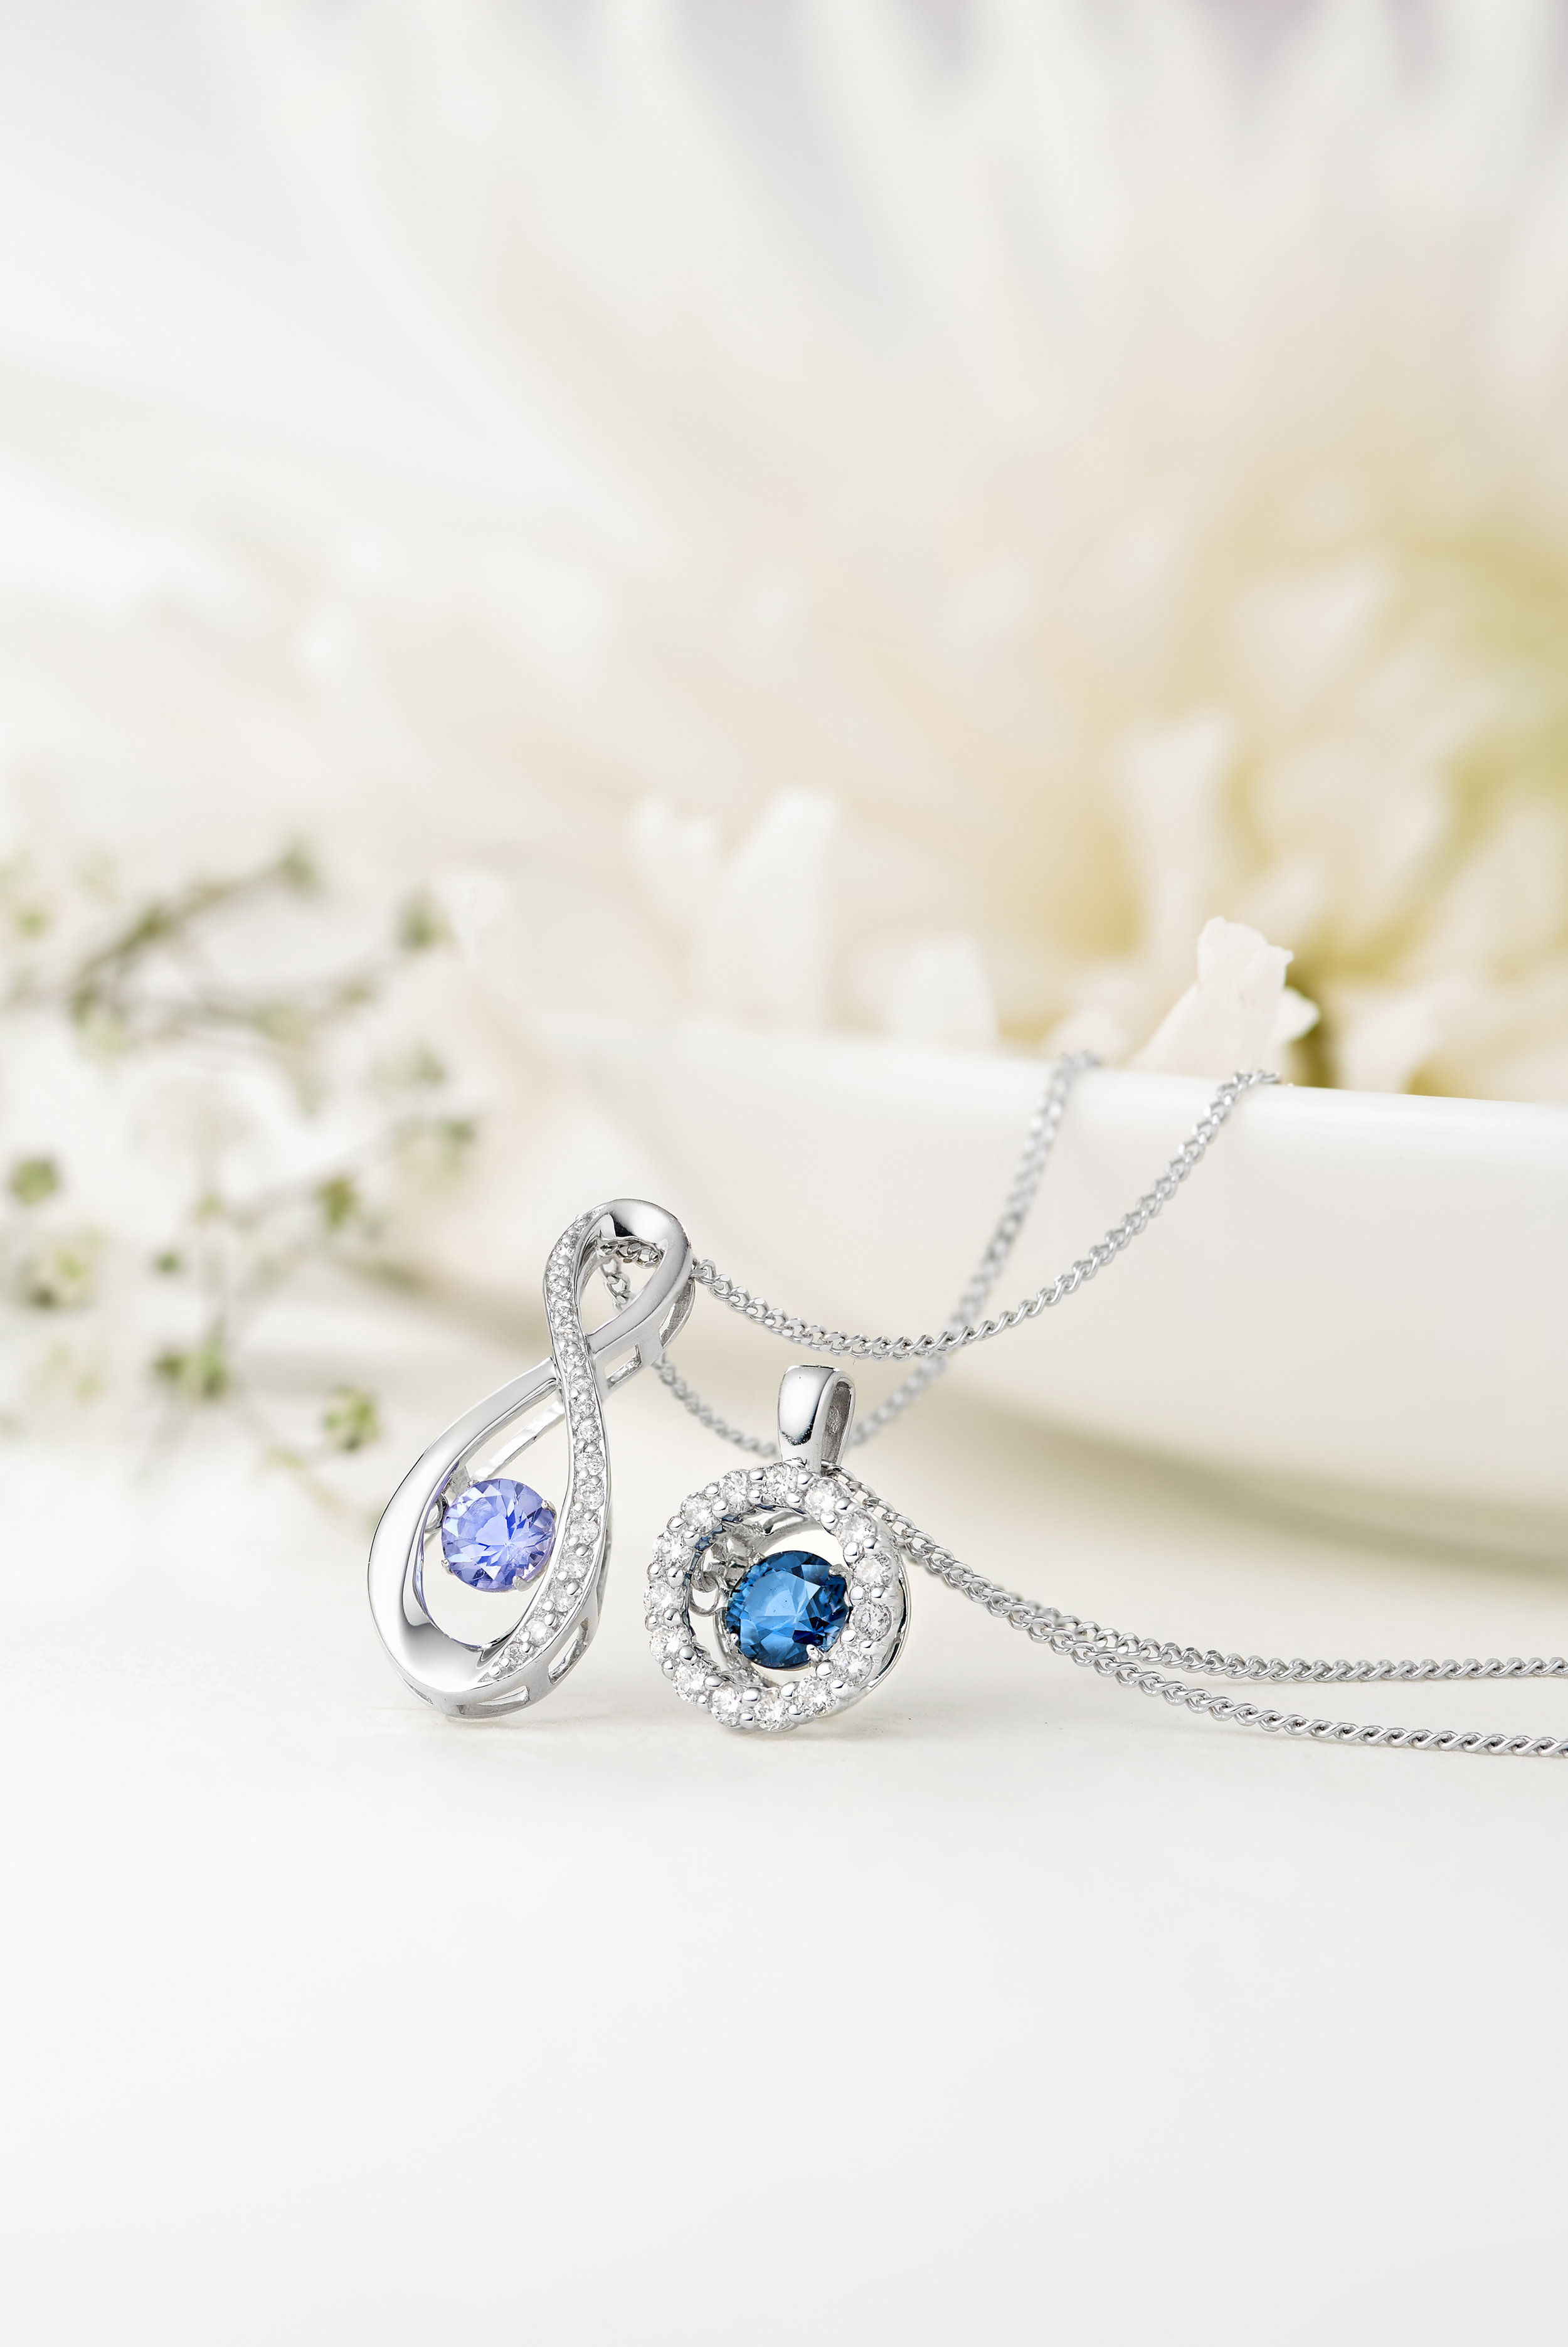 Add a splash of sophisticated colour with our  Dance by Beaverbrooks 9ct White Gold Blue Topaz Diamond Pendant  and the  9ct White Gold Sapphire and Diamond Pendant .